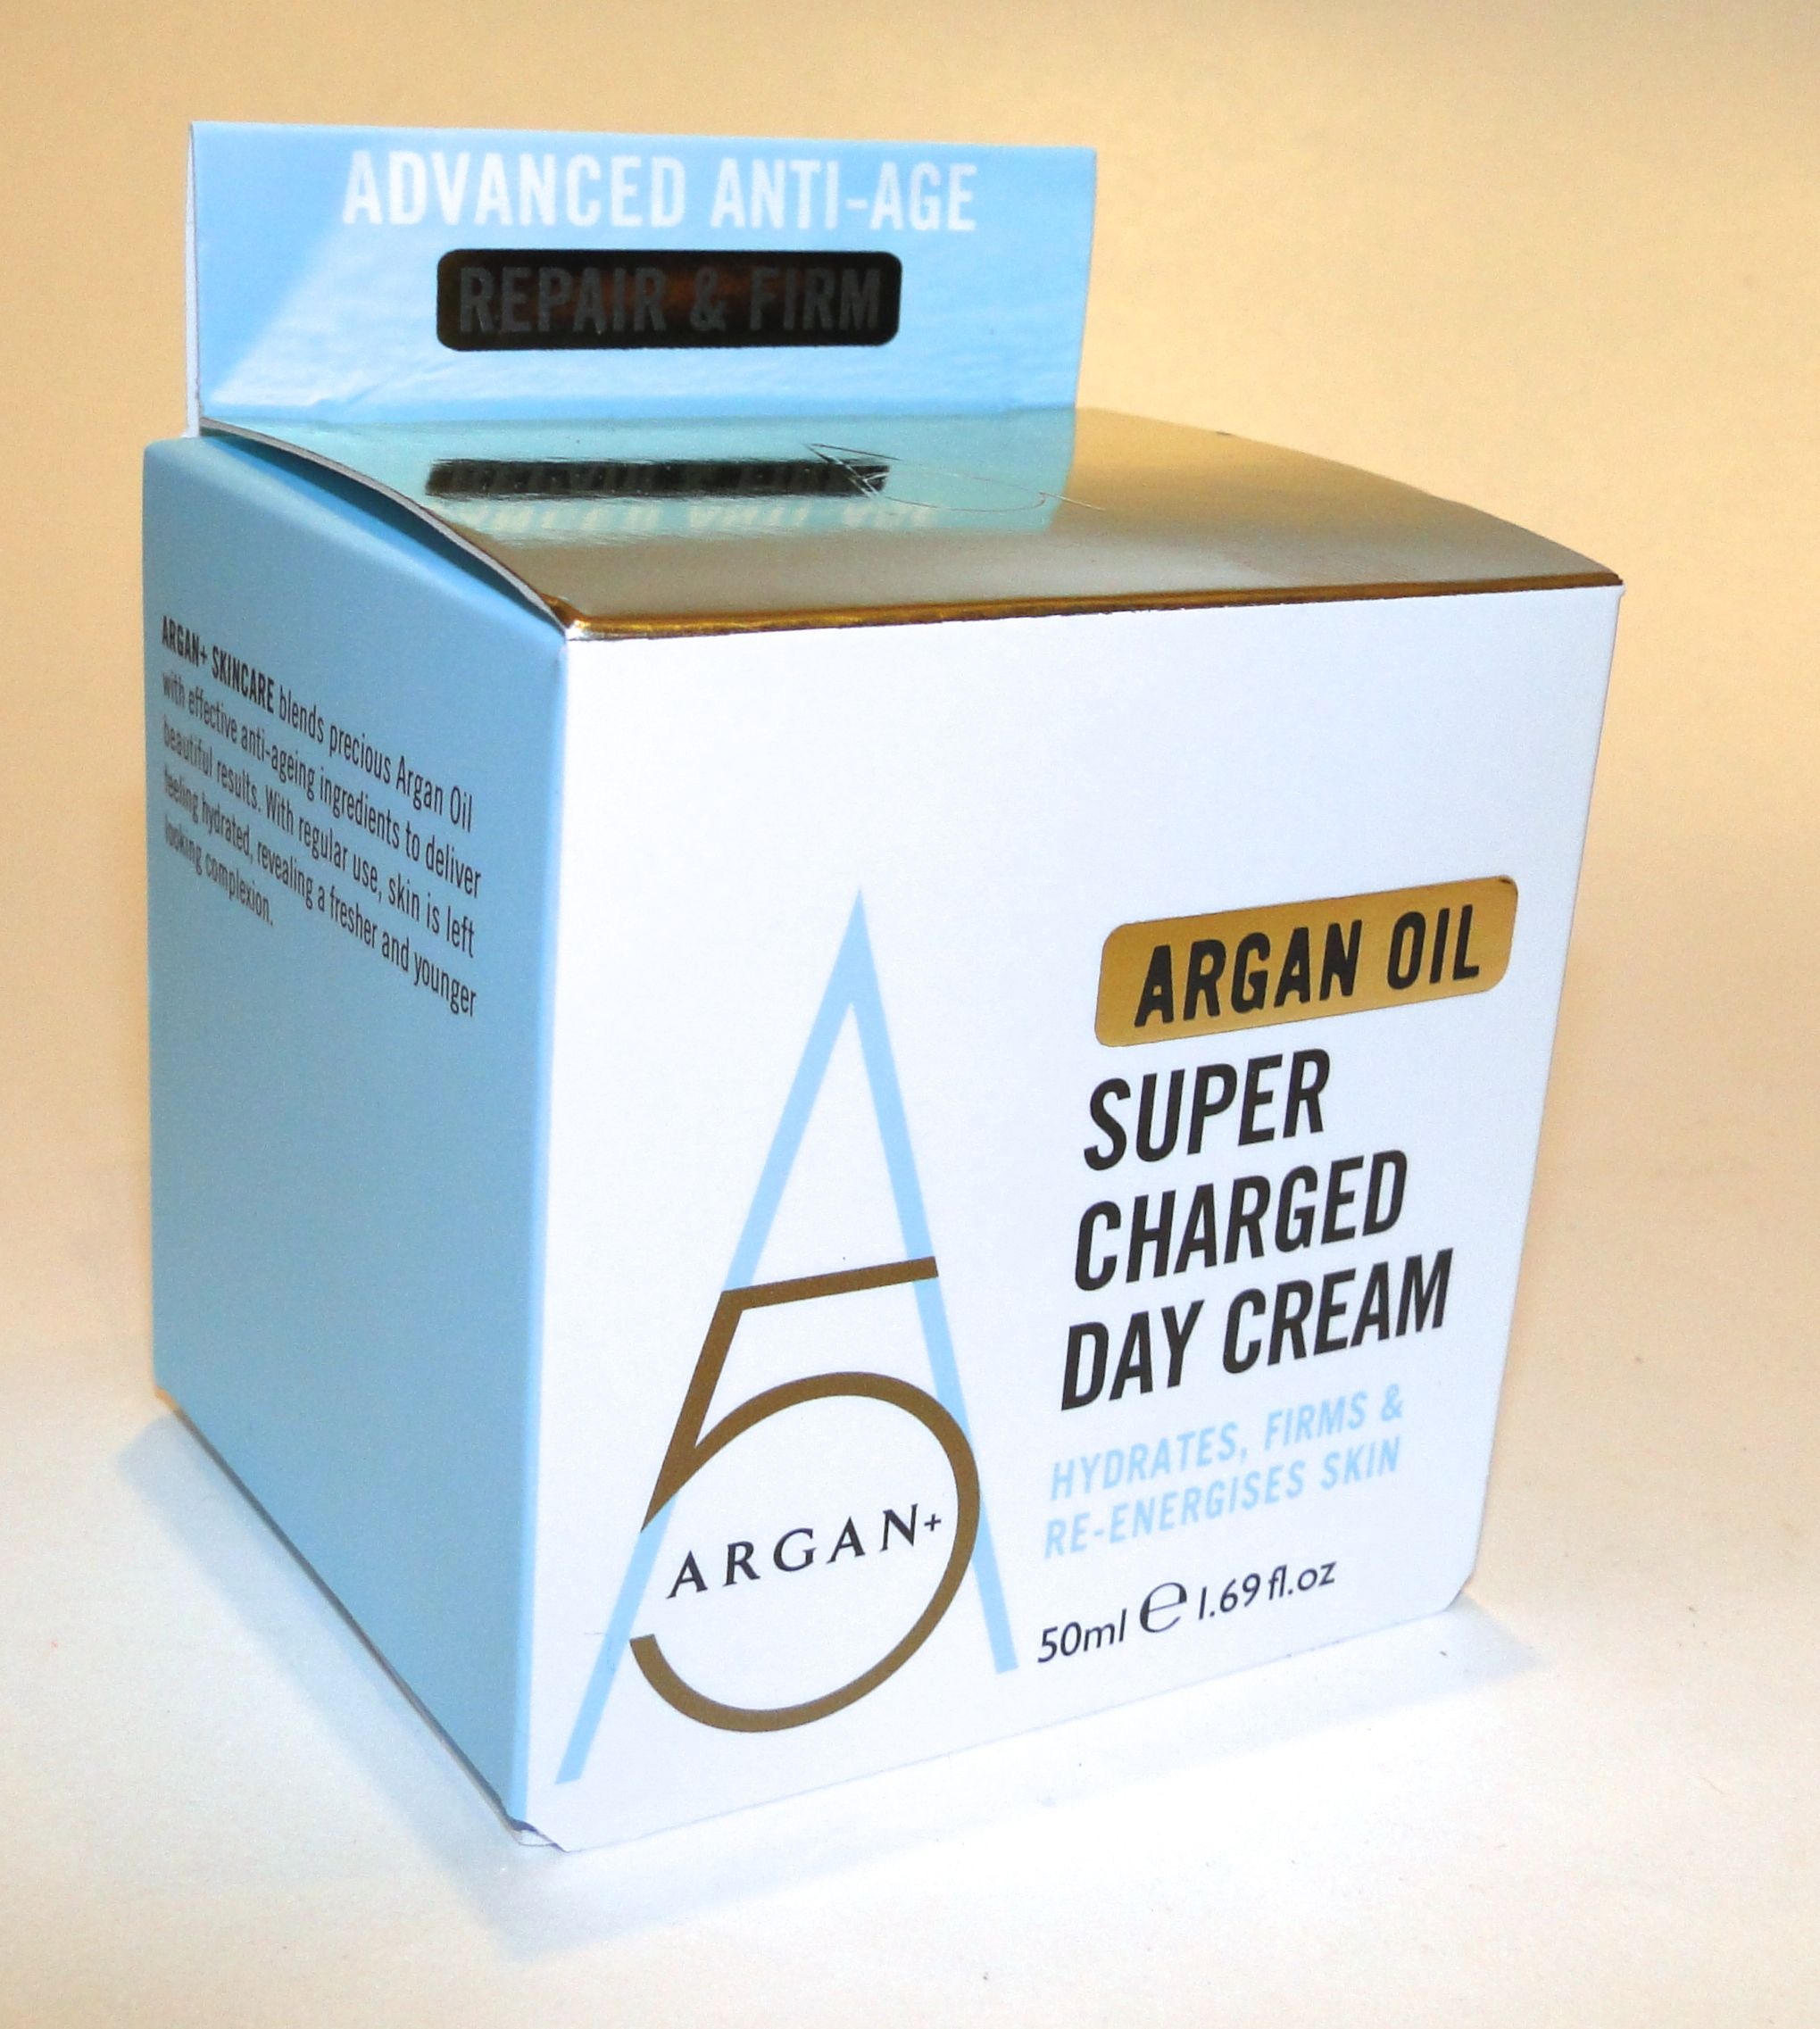 Argan 5 Super Charged Day Cream